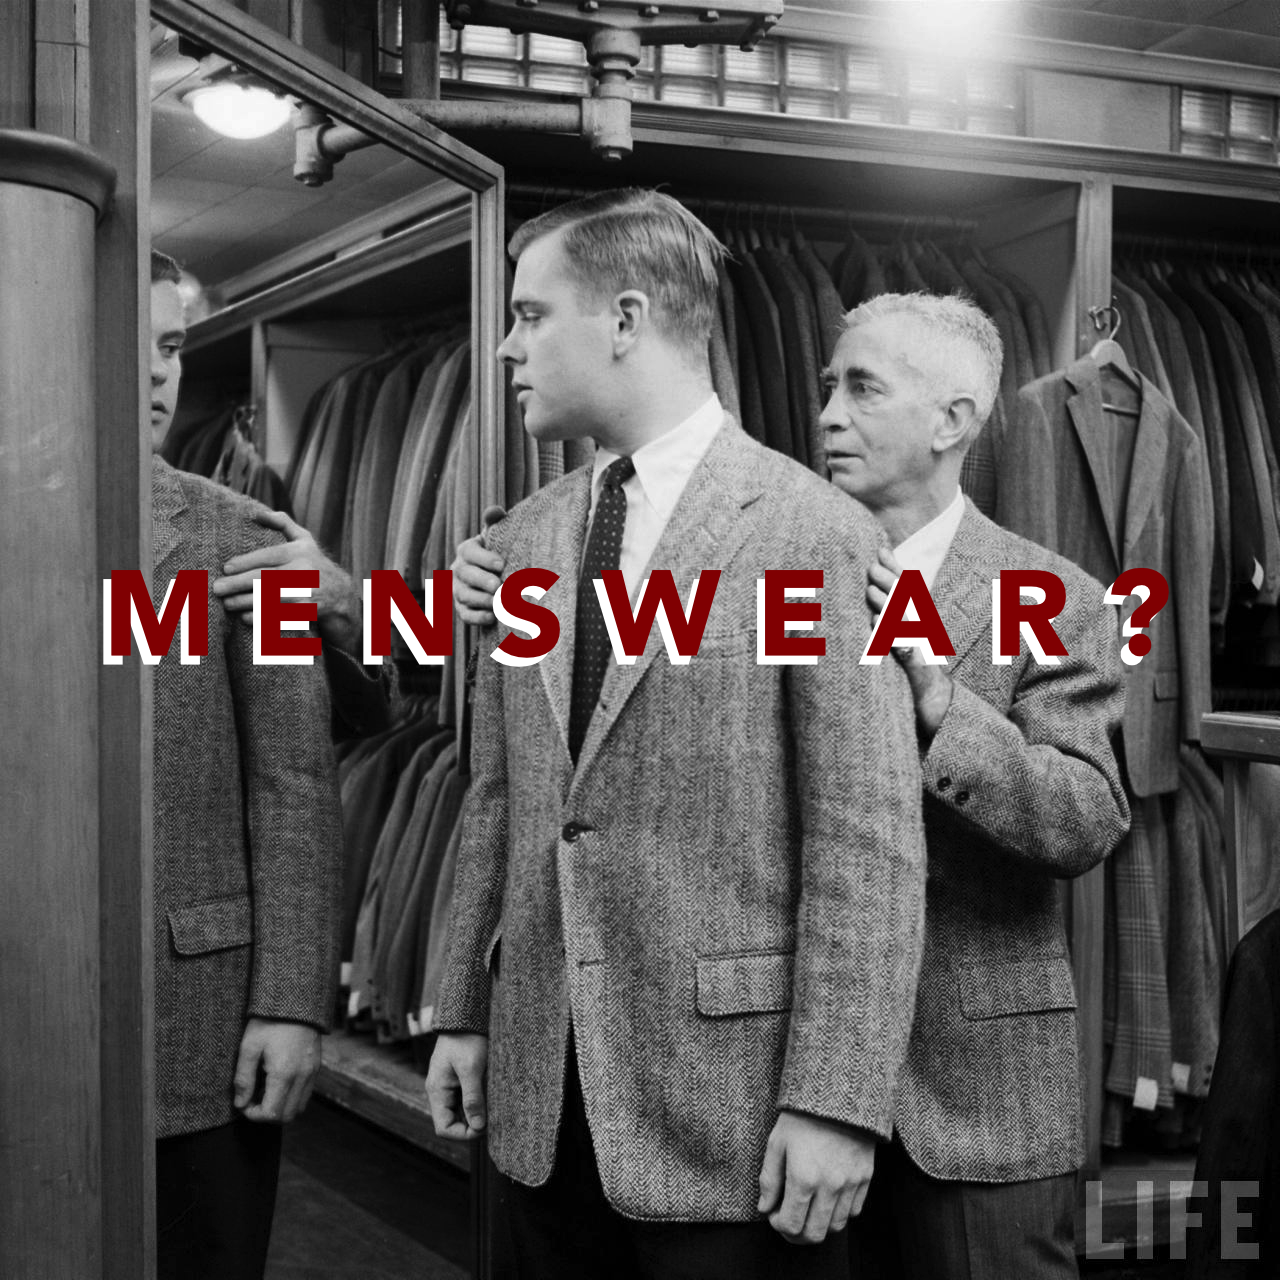 The State of Menswear (The RCS Opinion)